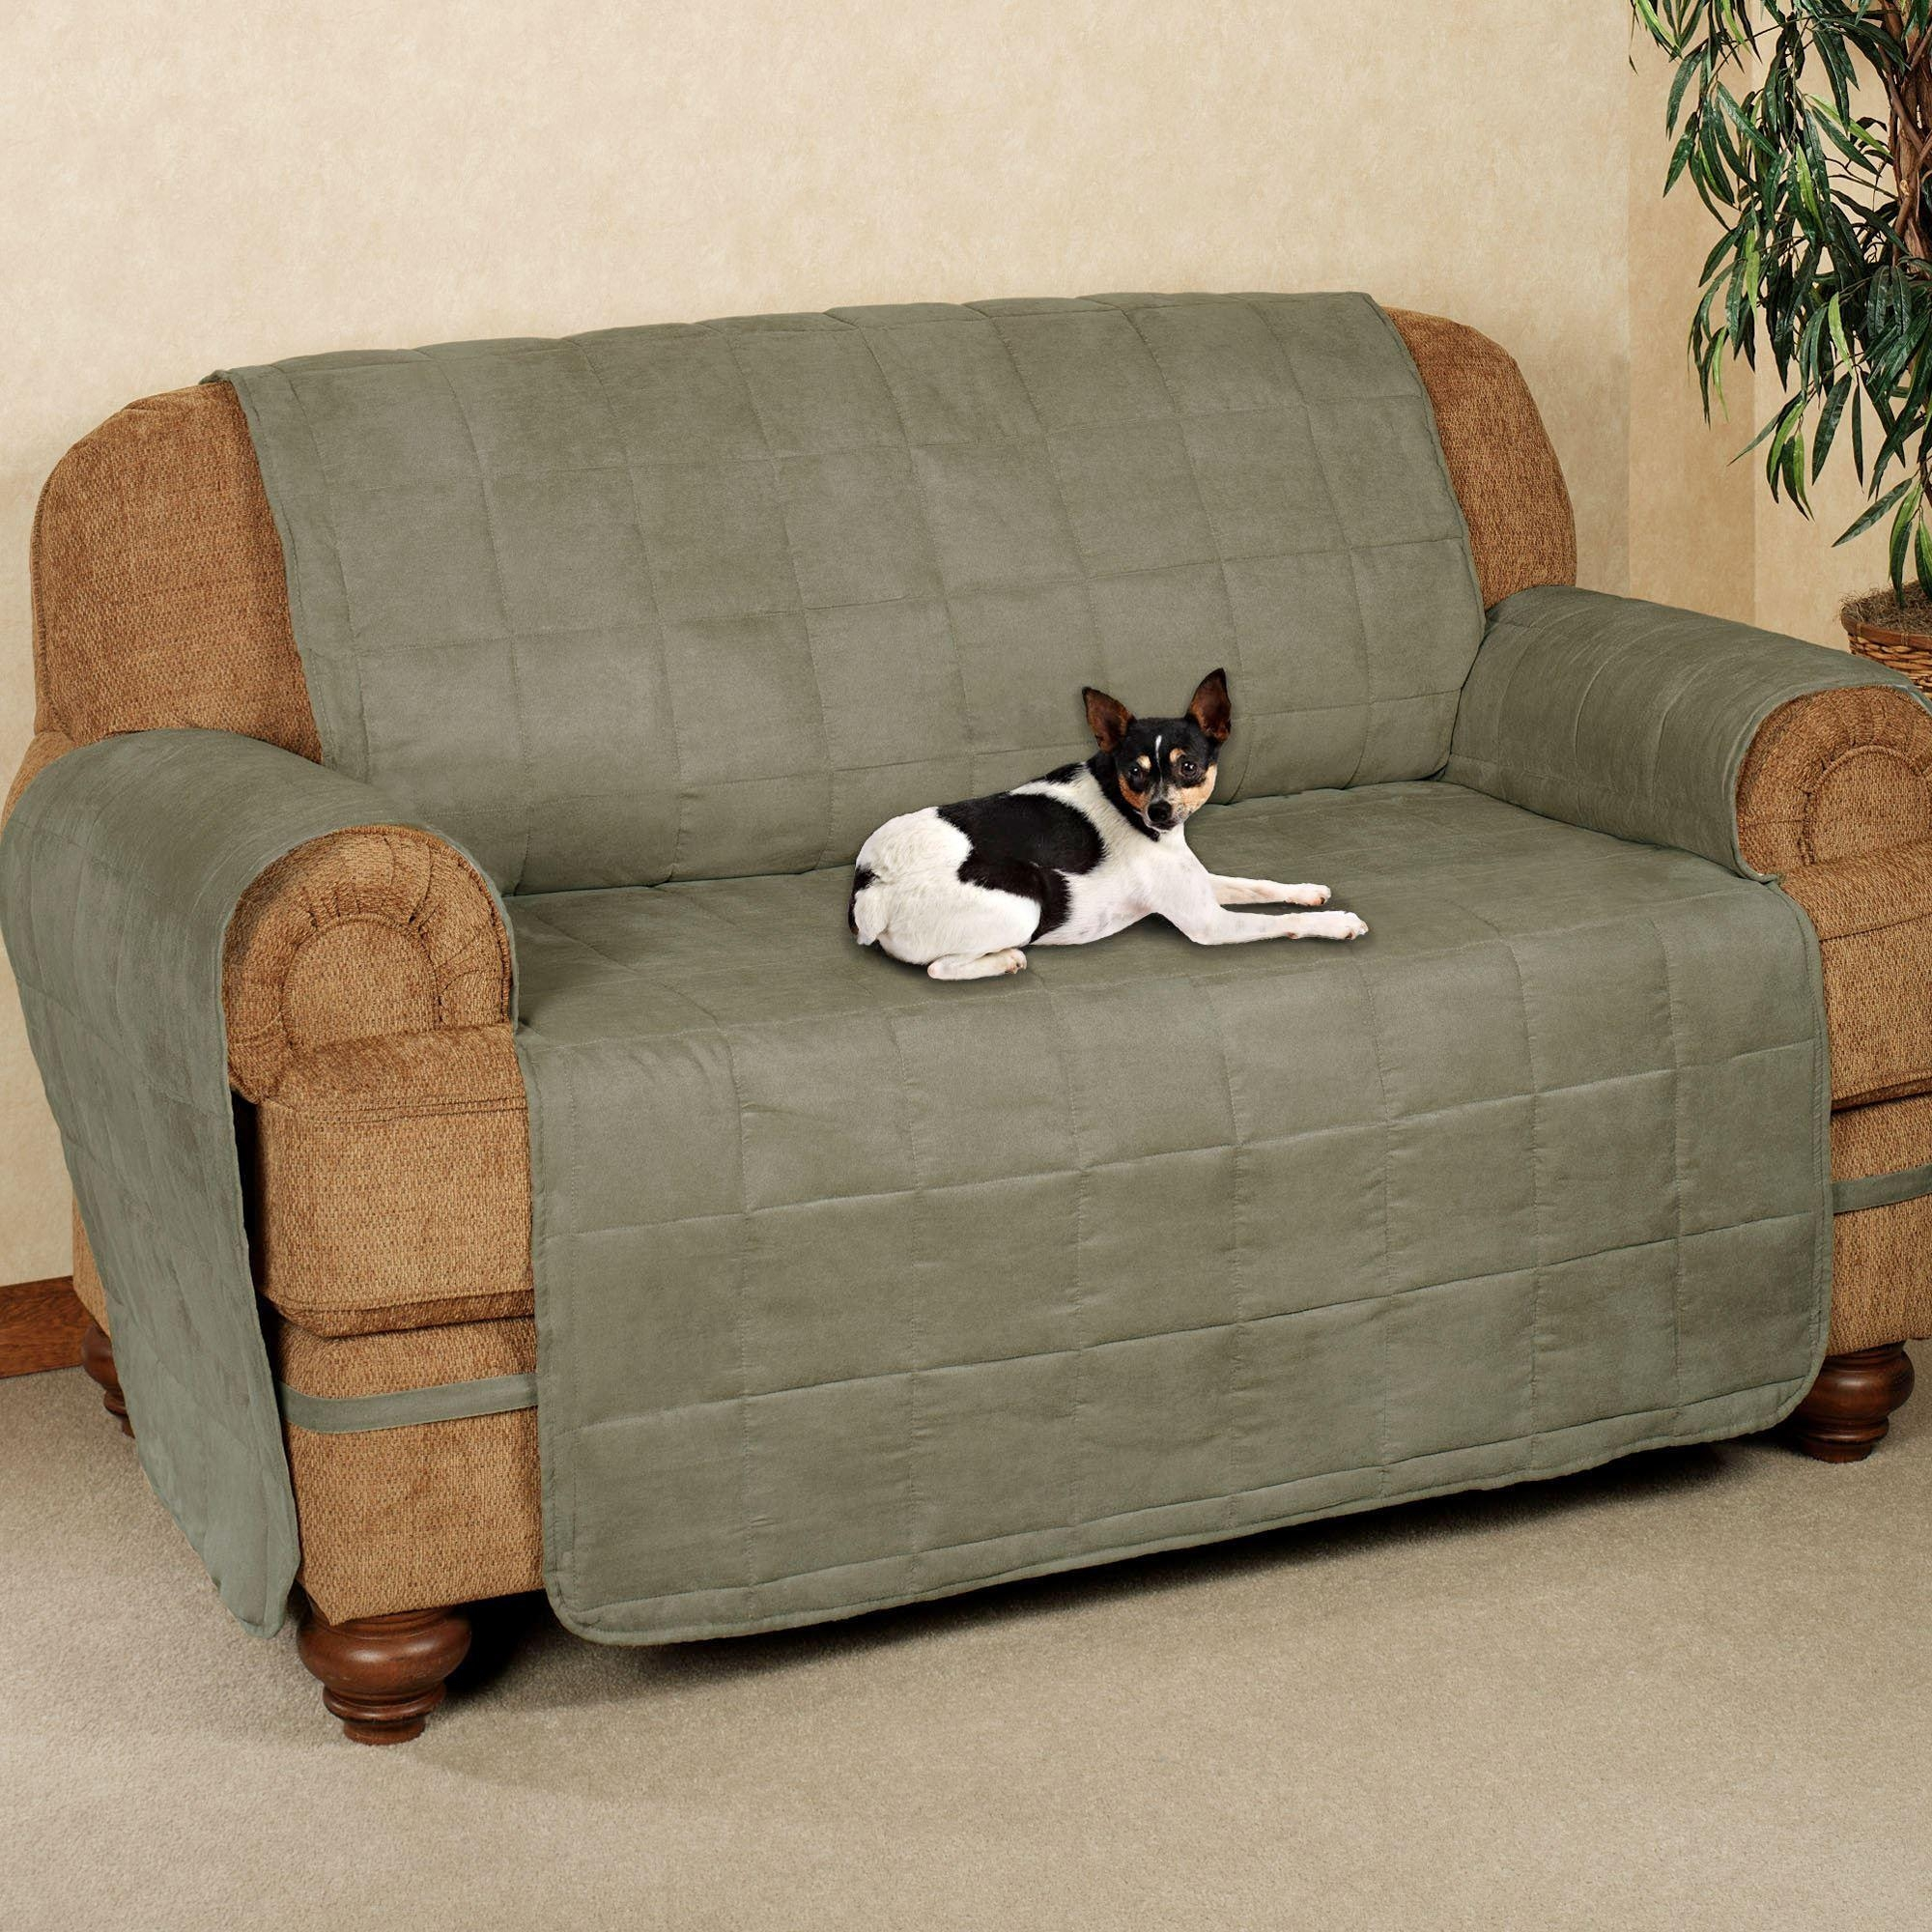 Sofas Center : Tips For Pet Friendly Home Hgtv Cat Proof Sofa With Regard To Cat Proof Sofas (Image 19 of 20)